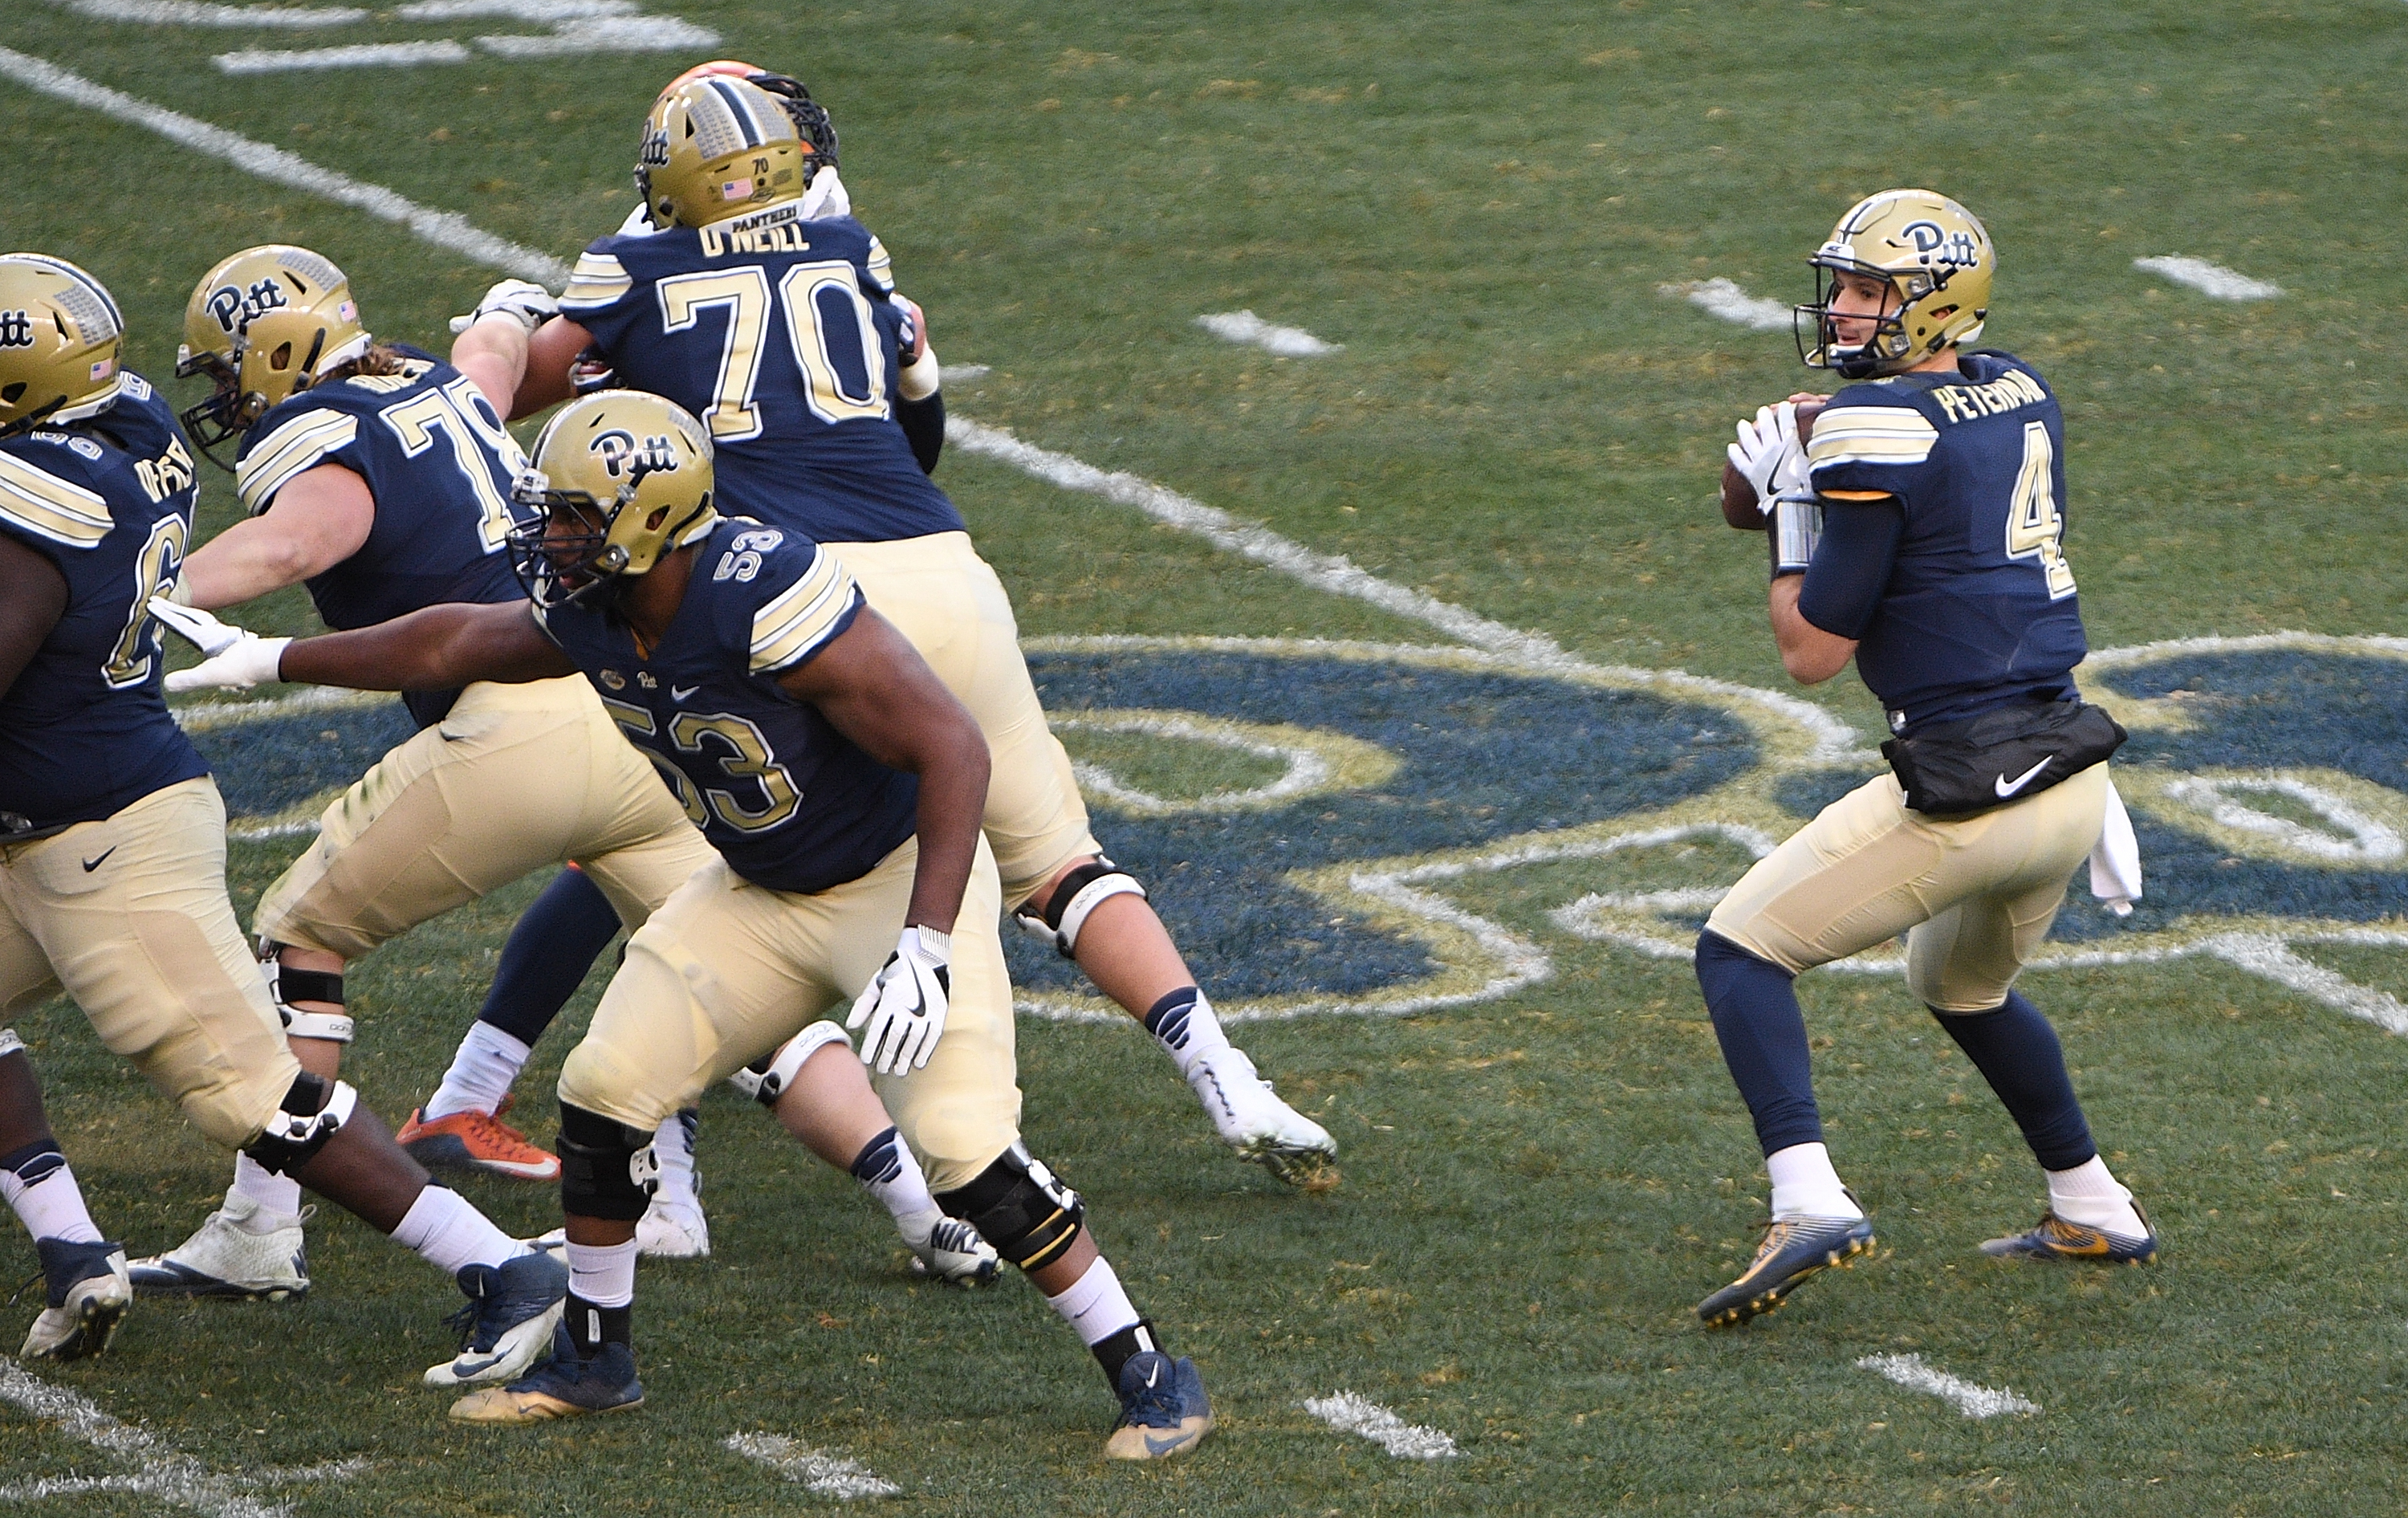 Pitt quarterback Nathan Peterman is one of the top players available on Day Three of the NFL Draft. (Getty Images)